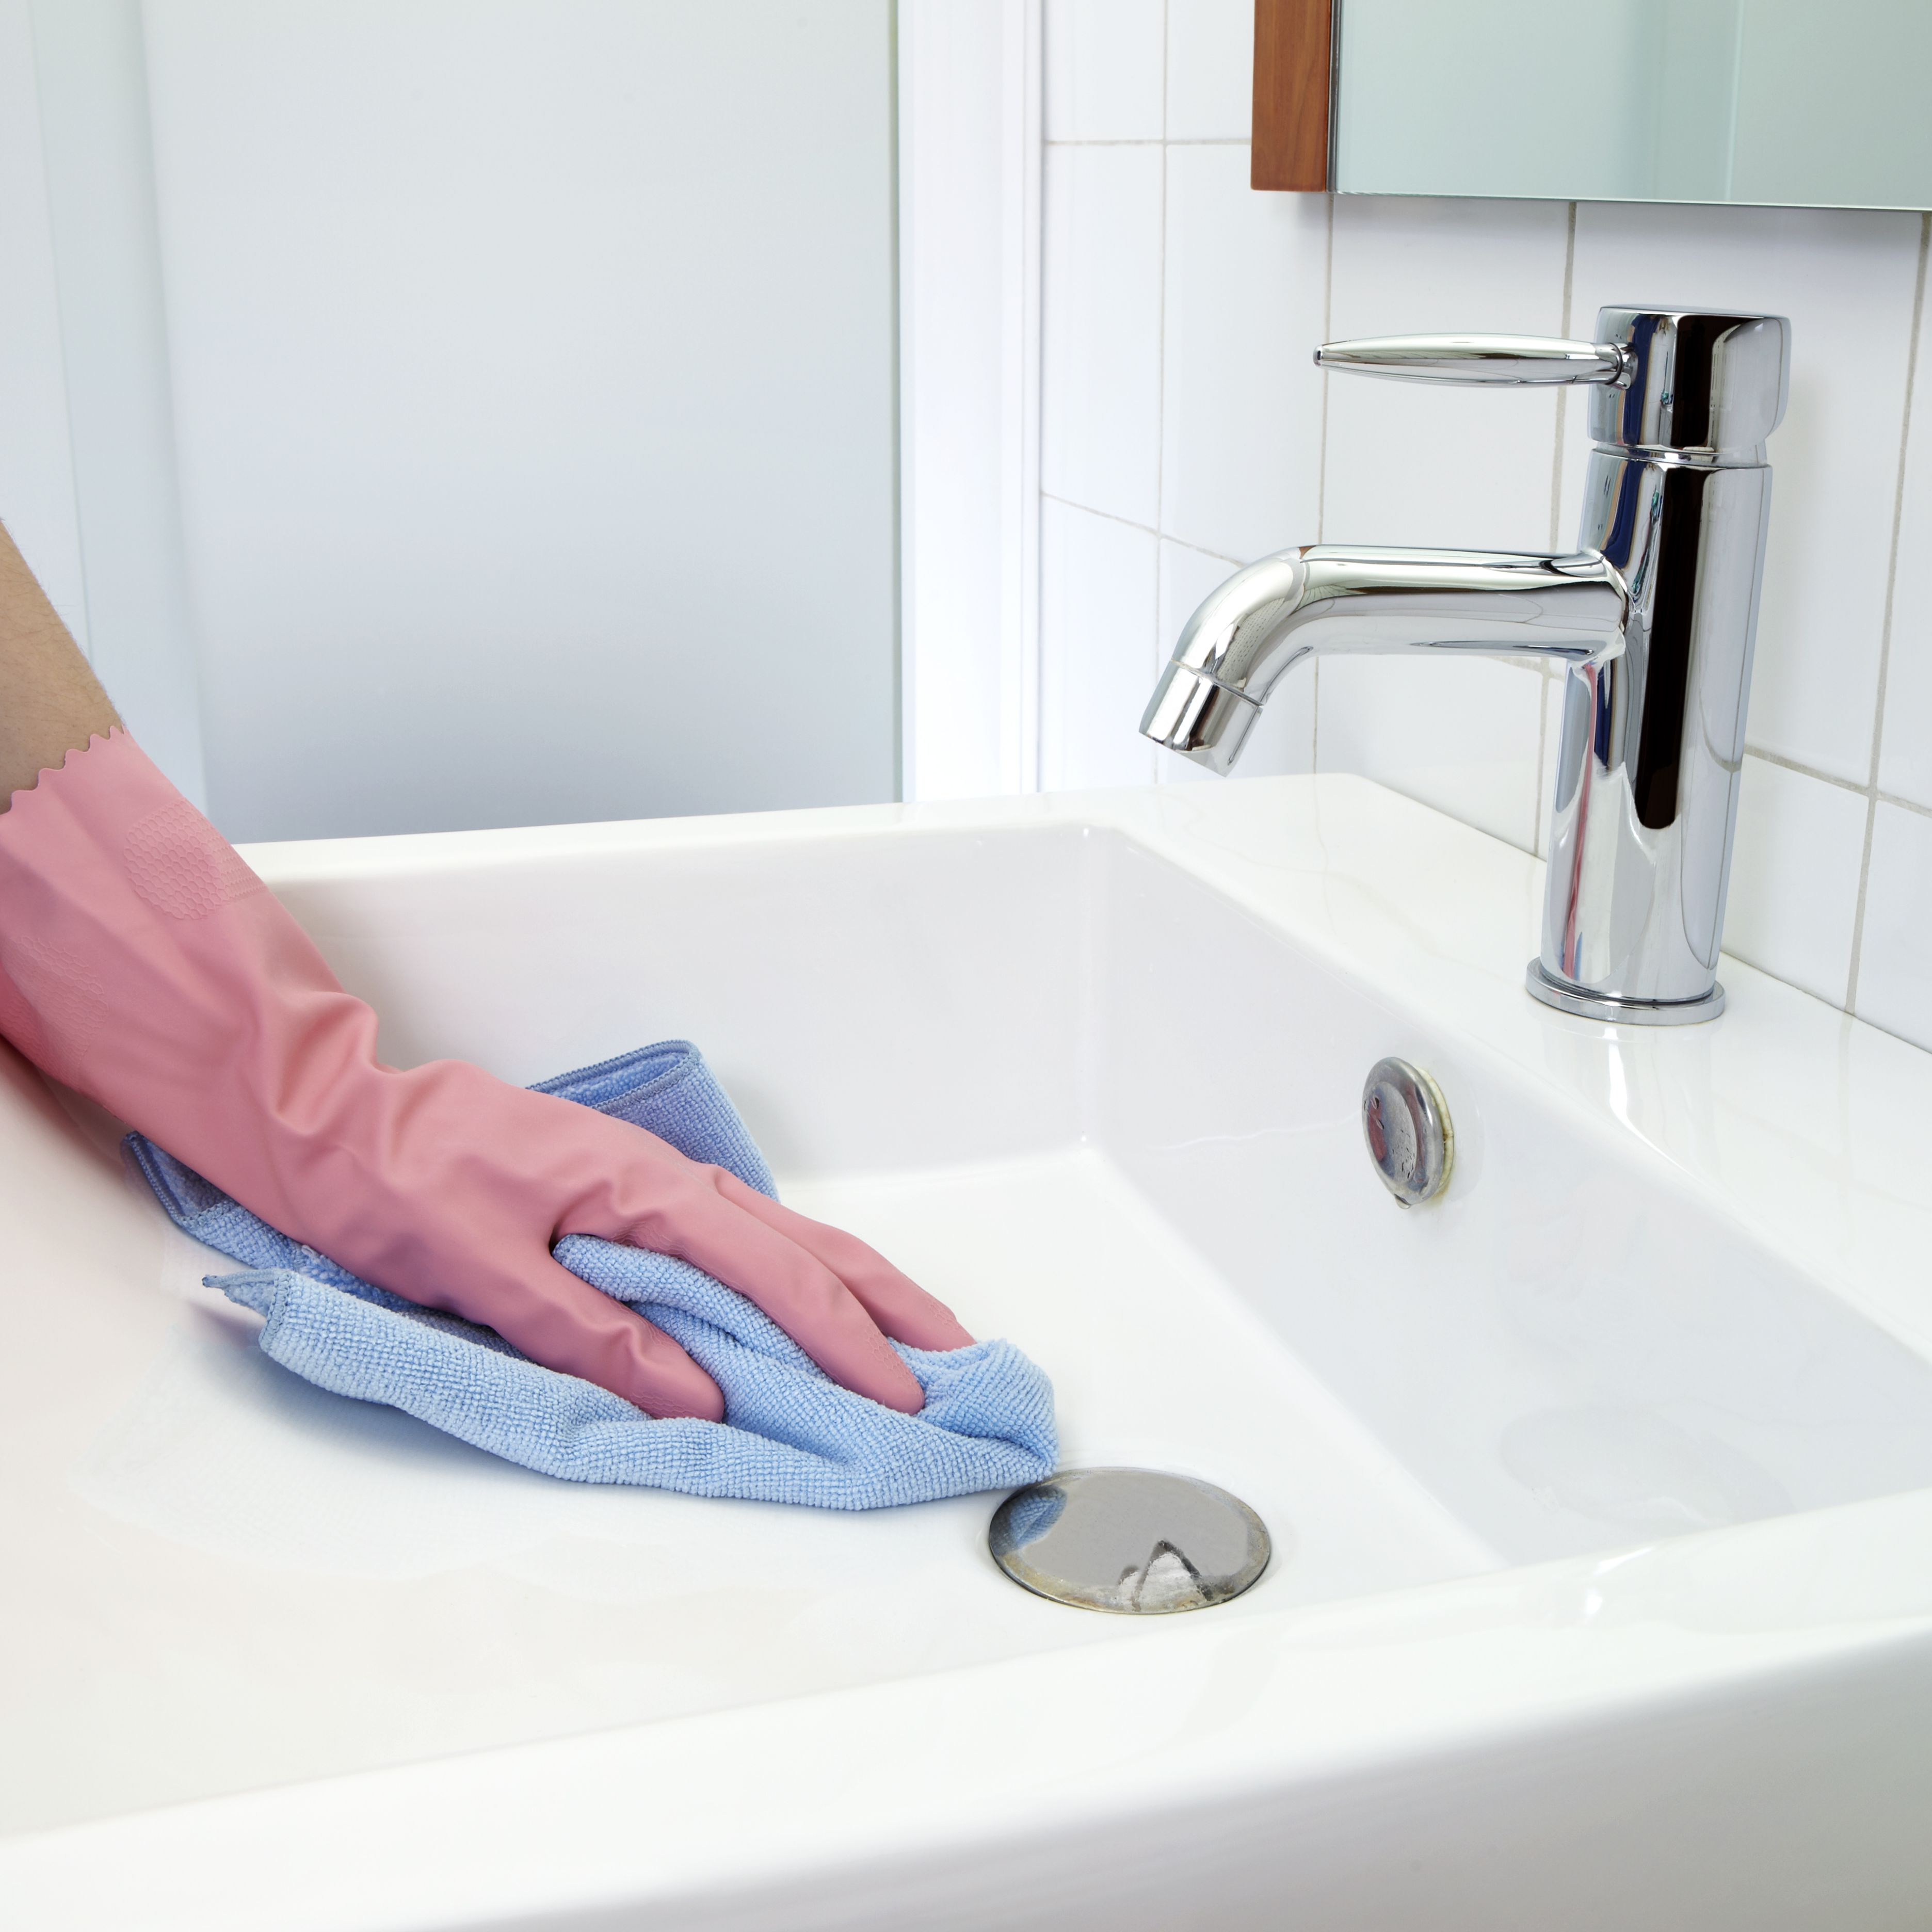 How to Remove Rust Stains From Toilets, Tubs, and Sinks